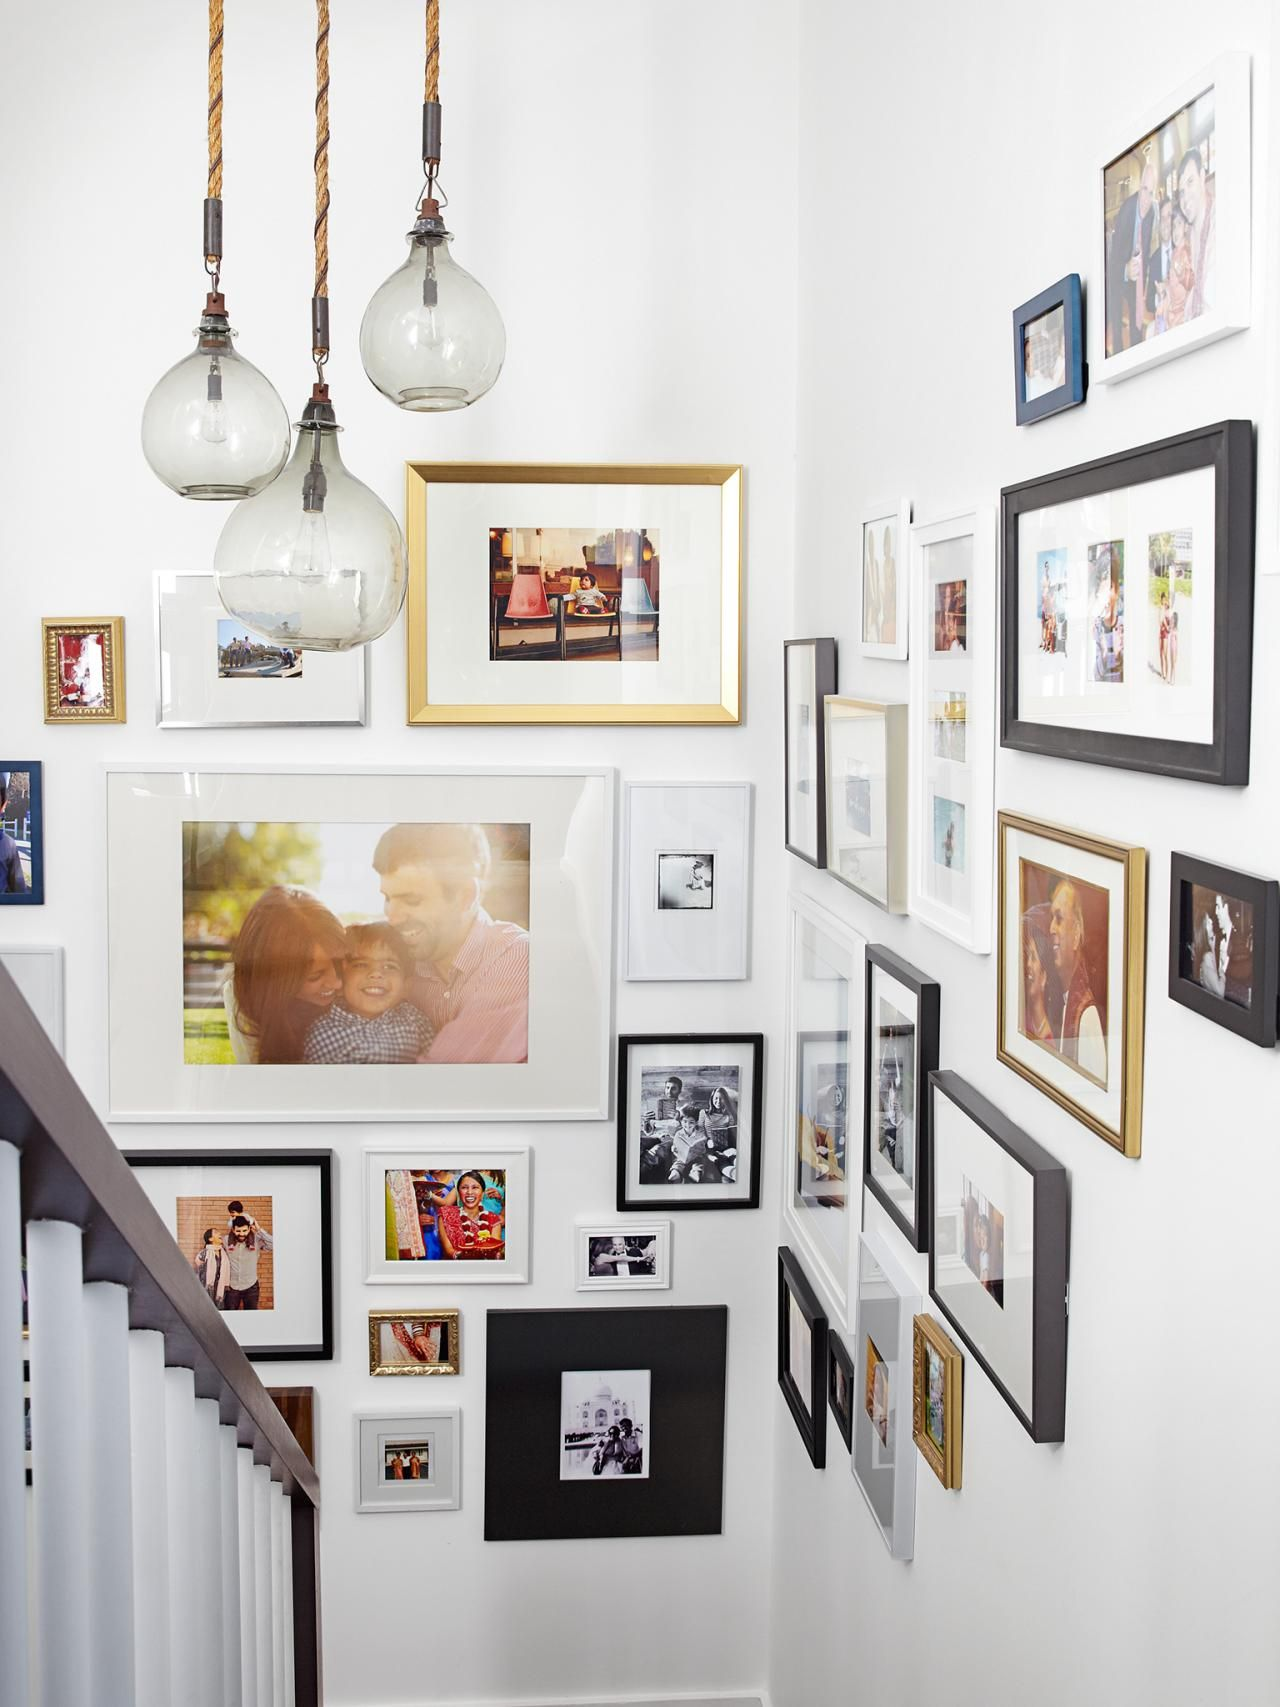 Contemporary Home Makeover   Frame sizes, Gallery wall and Art walls